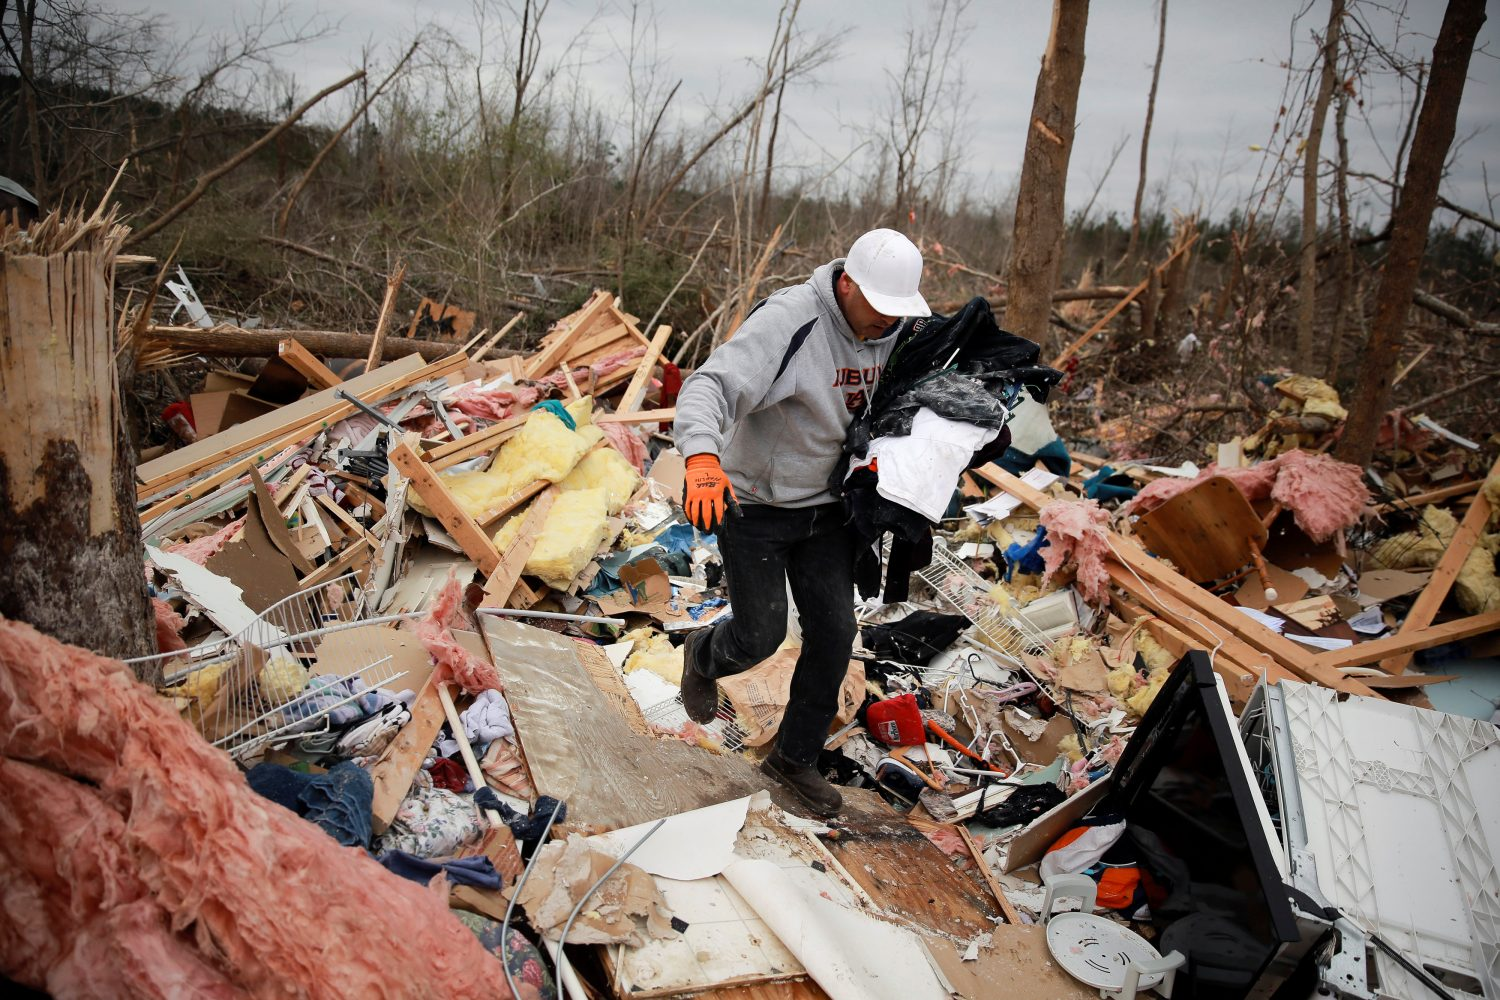 Dax Leandro salvages clothing from the wreckage of his friend's home after two back-to-back tornadoes touched down, in Beauregard, Alabama, U.S., March 4, 2019. REUTERS/Elijah Nouvelage